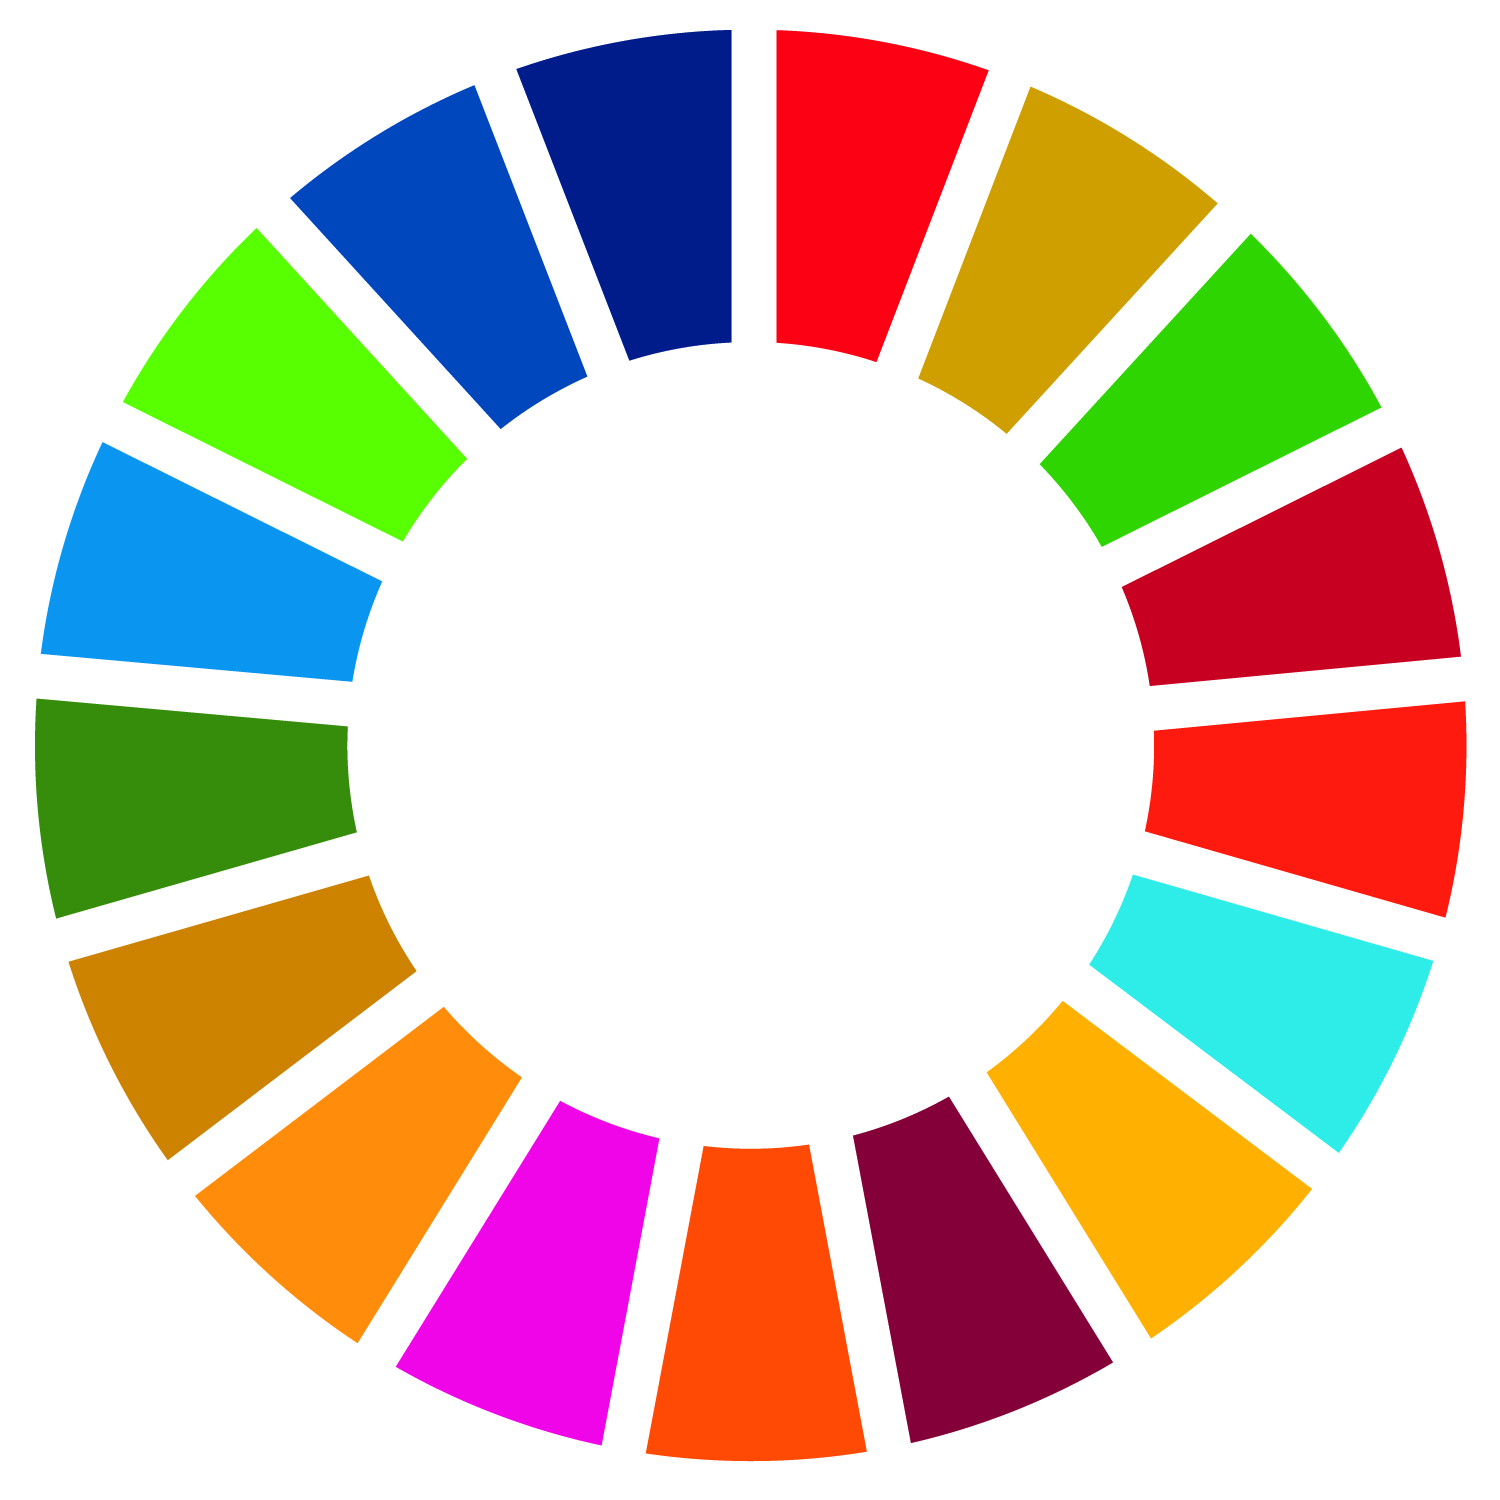 Click on the sustainable development color wheel to visit the UN's sustainable development goal website.